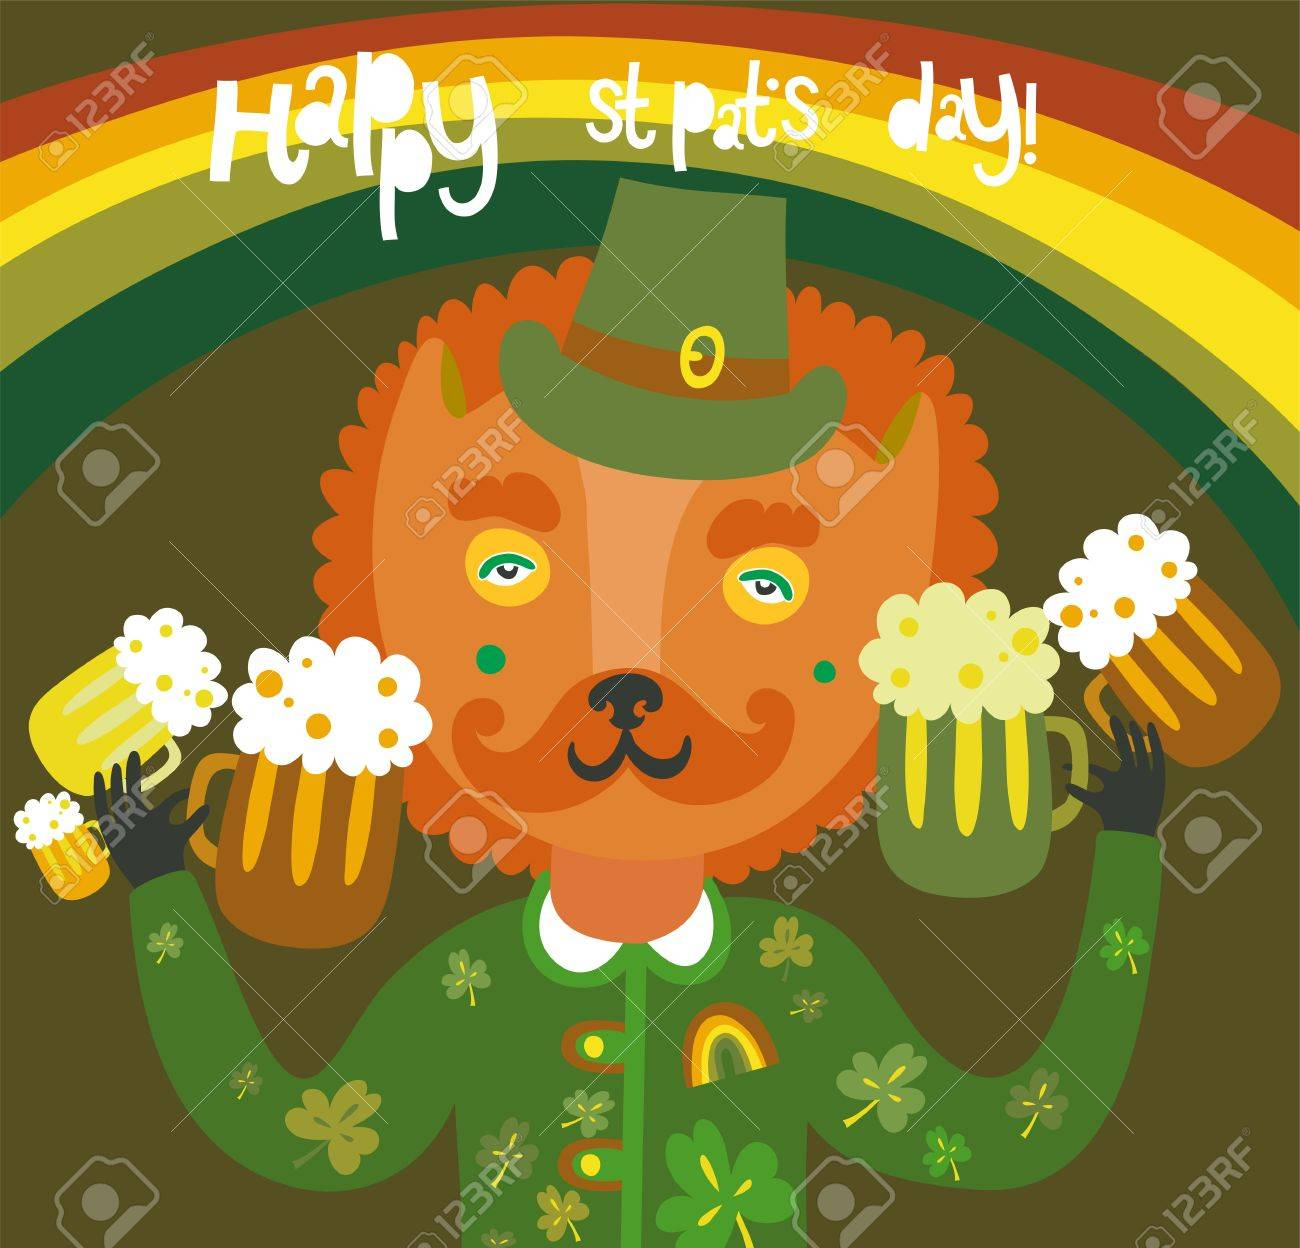 Cute St Patrick s day background with cat Stock Vector - 17960360